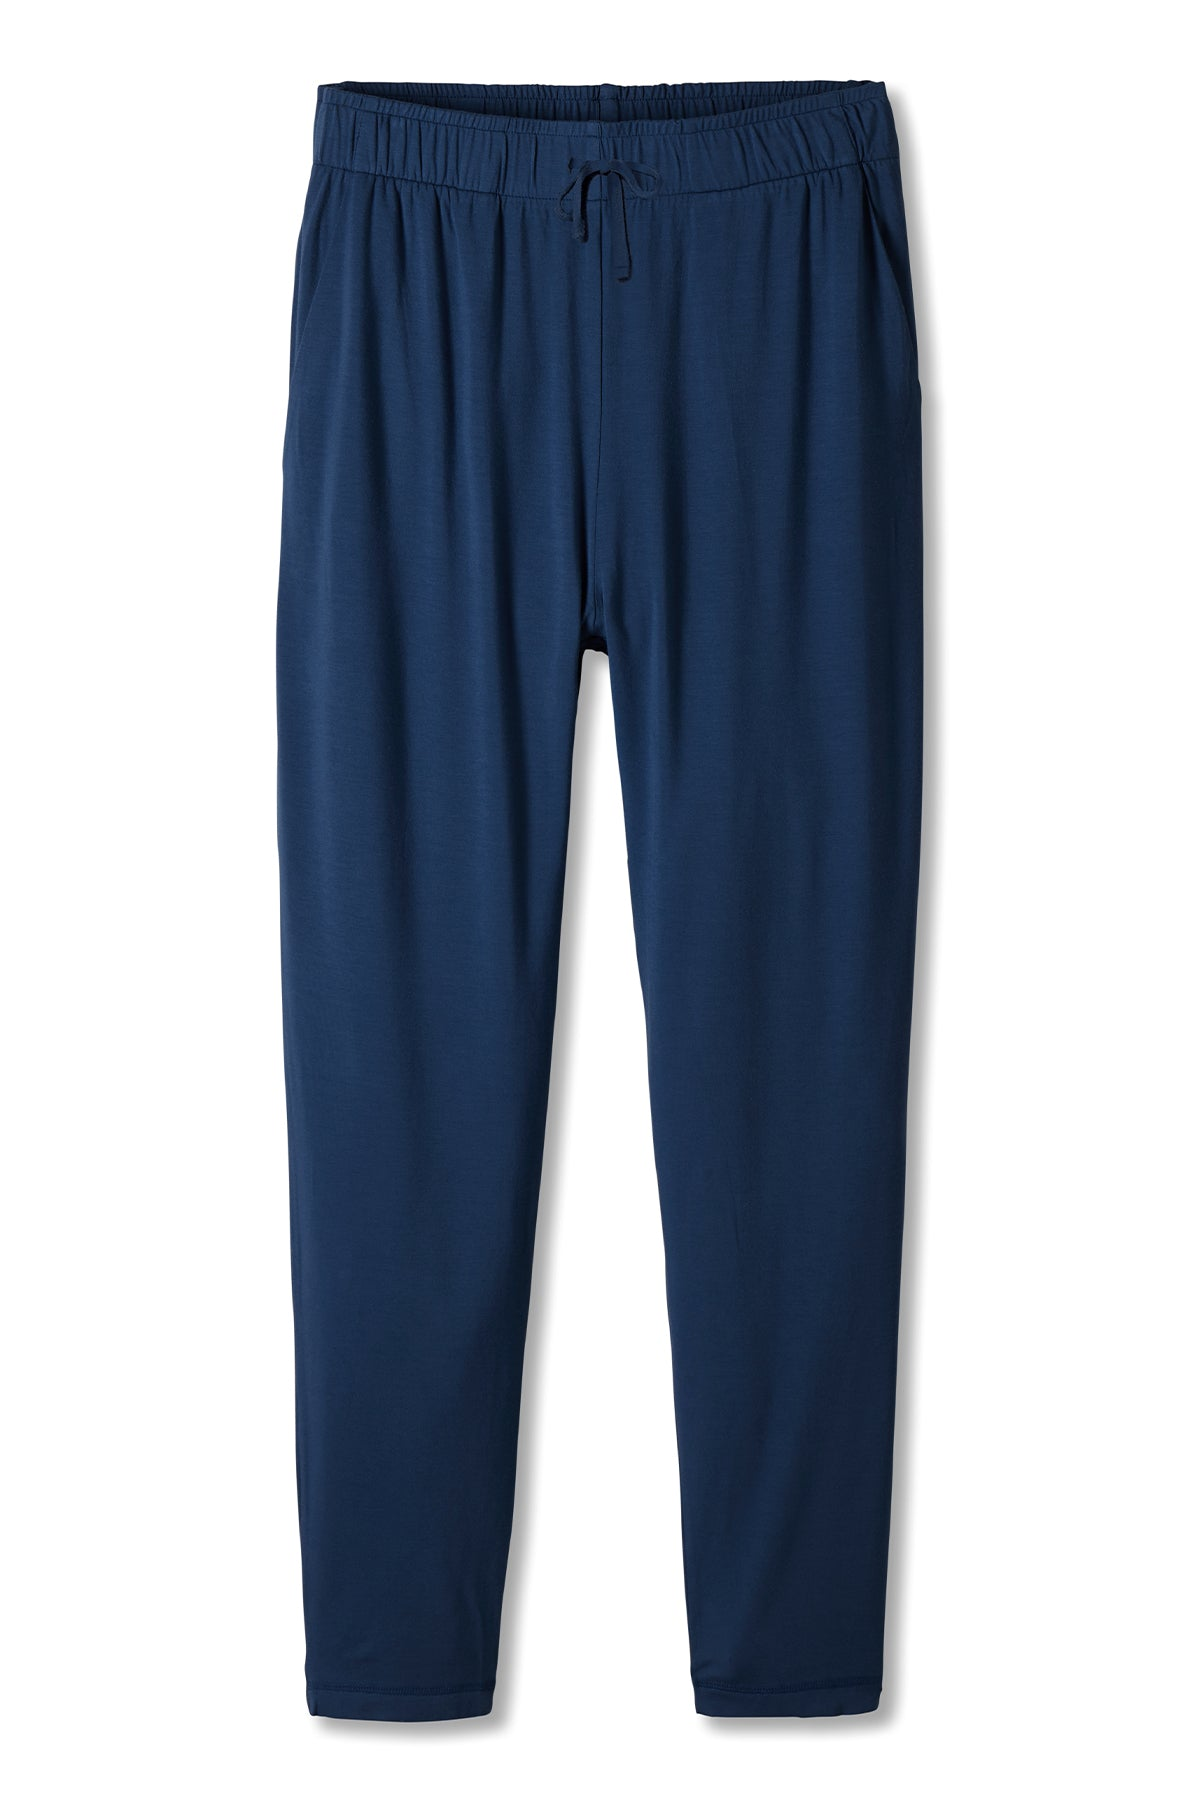 Men's Bamboo Lounge Pants in Navy